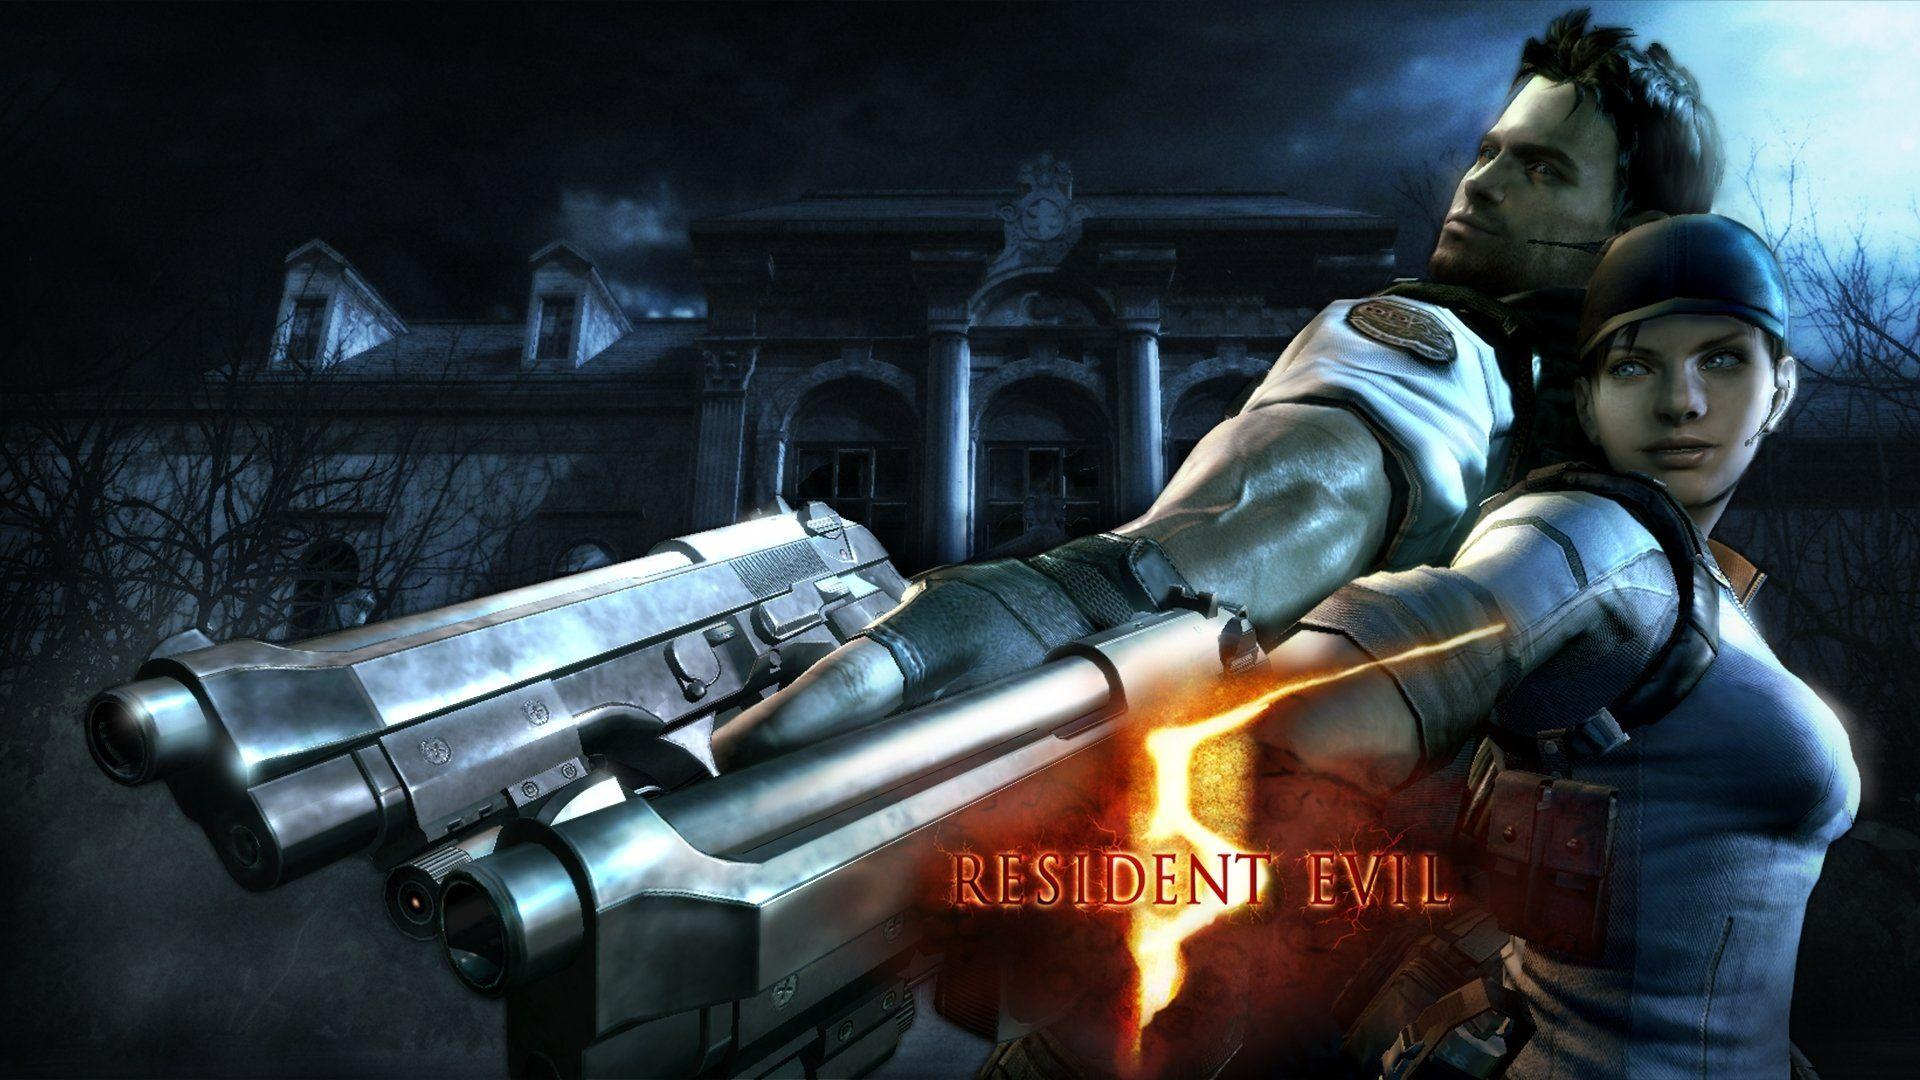 Resident Evil 5 Hd Wallpapers Wallpaper Cave